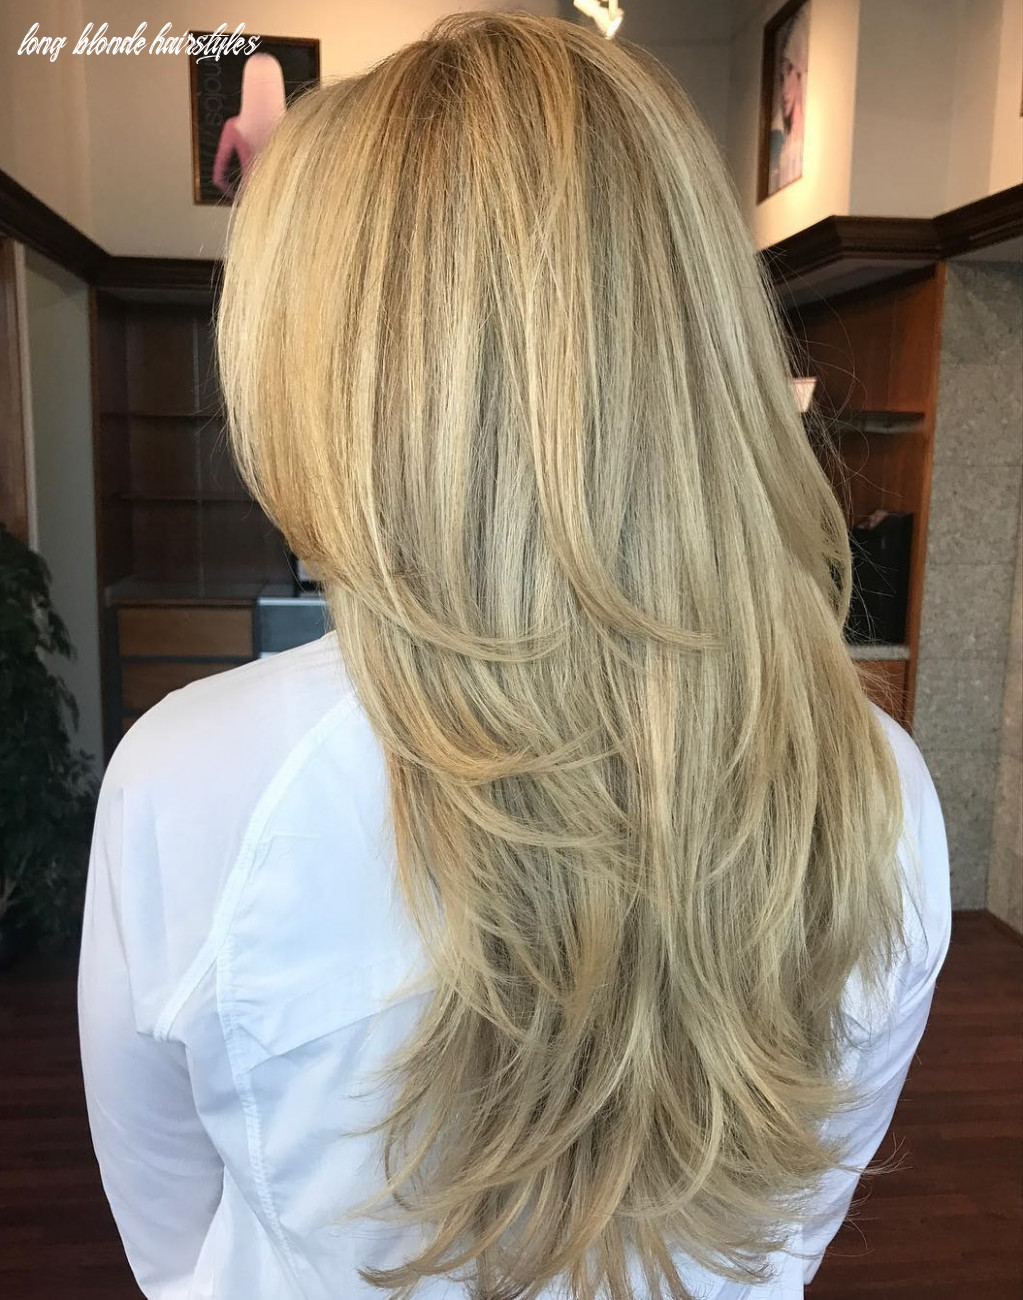 12 new long hairstyles with layers for 12 hair adviser long blonde hairstyles